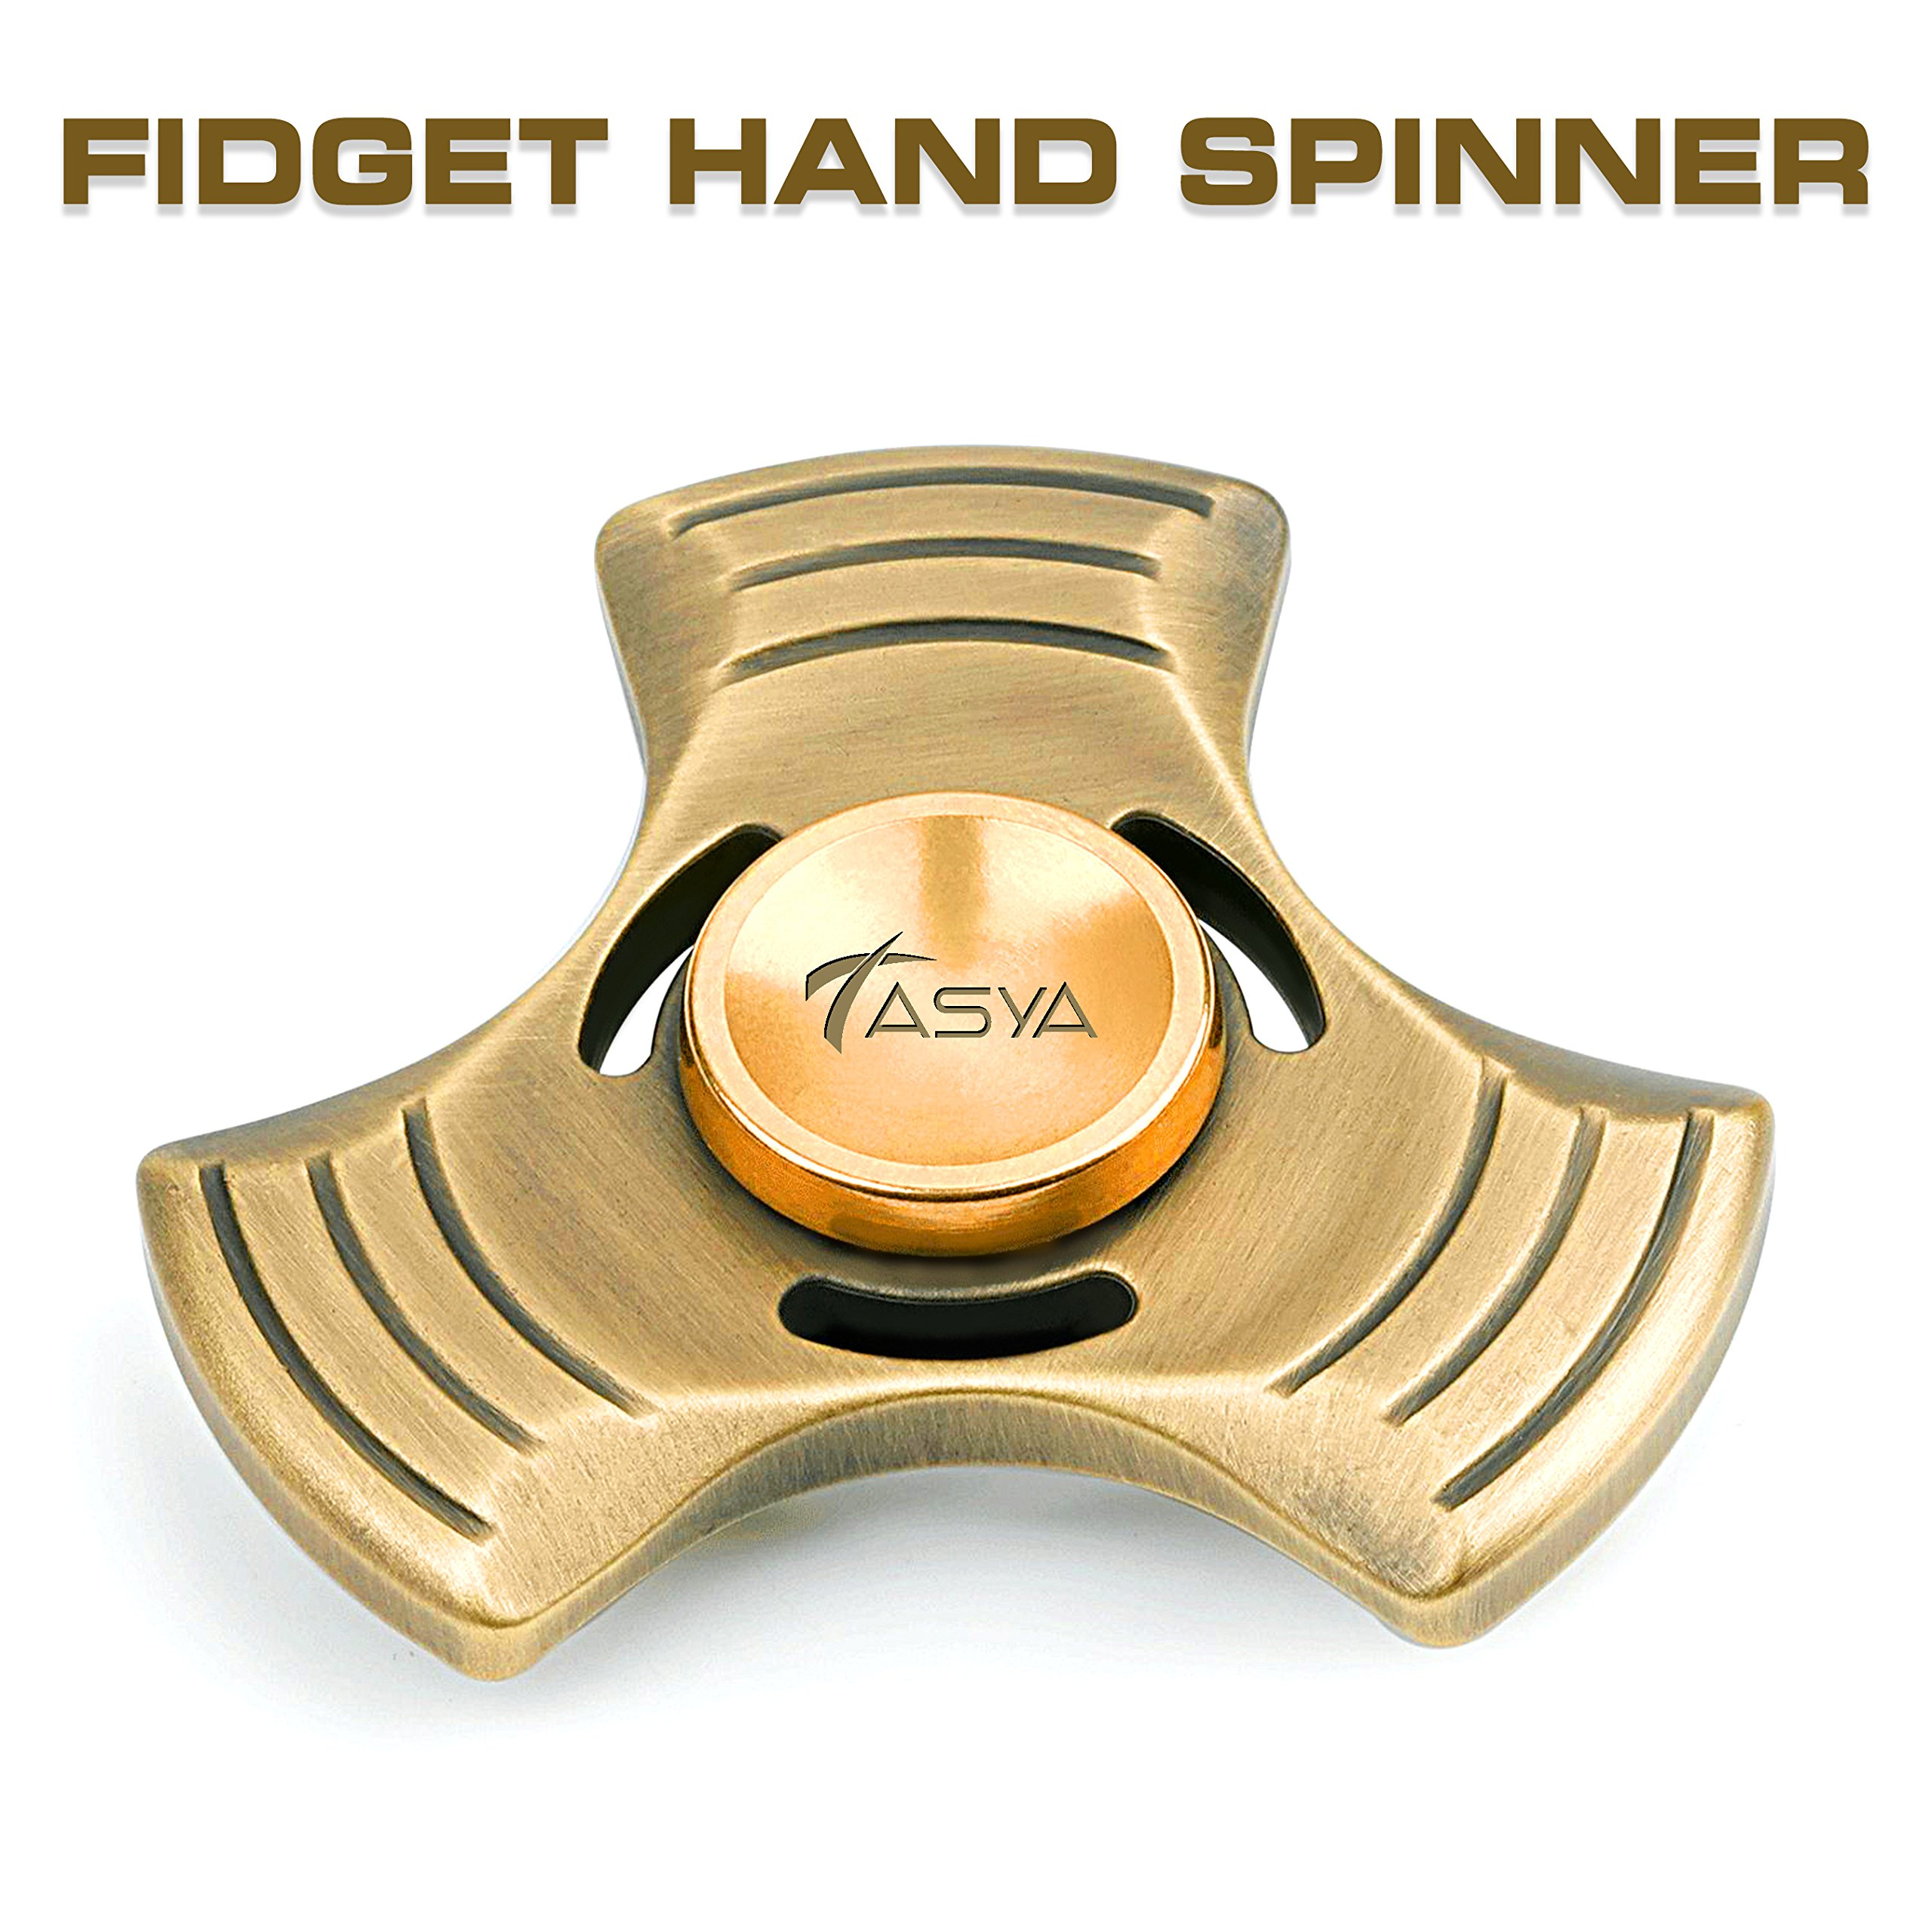 TASYA Fidget Spinner – Premium Quality Antiqued Solid Metal Spinning Fidget Toy for Kids & Adults - Relax from Stress & Anxiety - Precision Ceramic Bearings - Spins up to 6 minutes